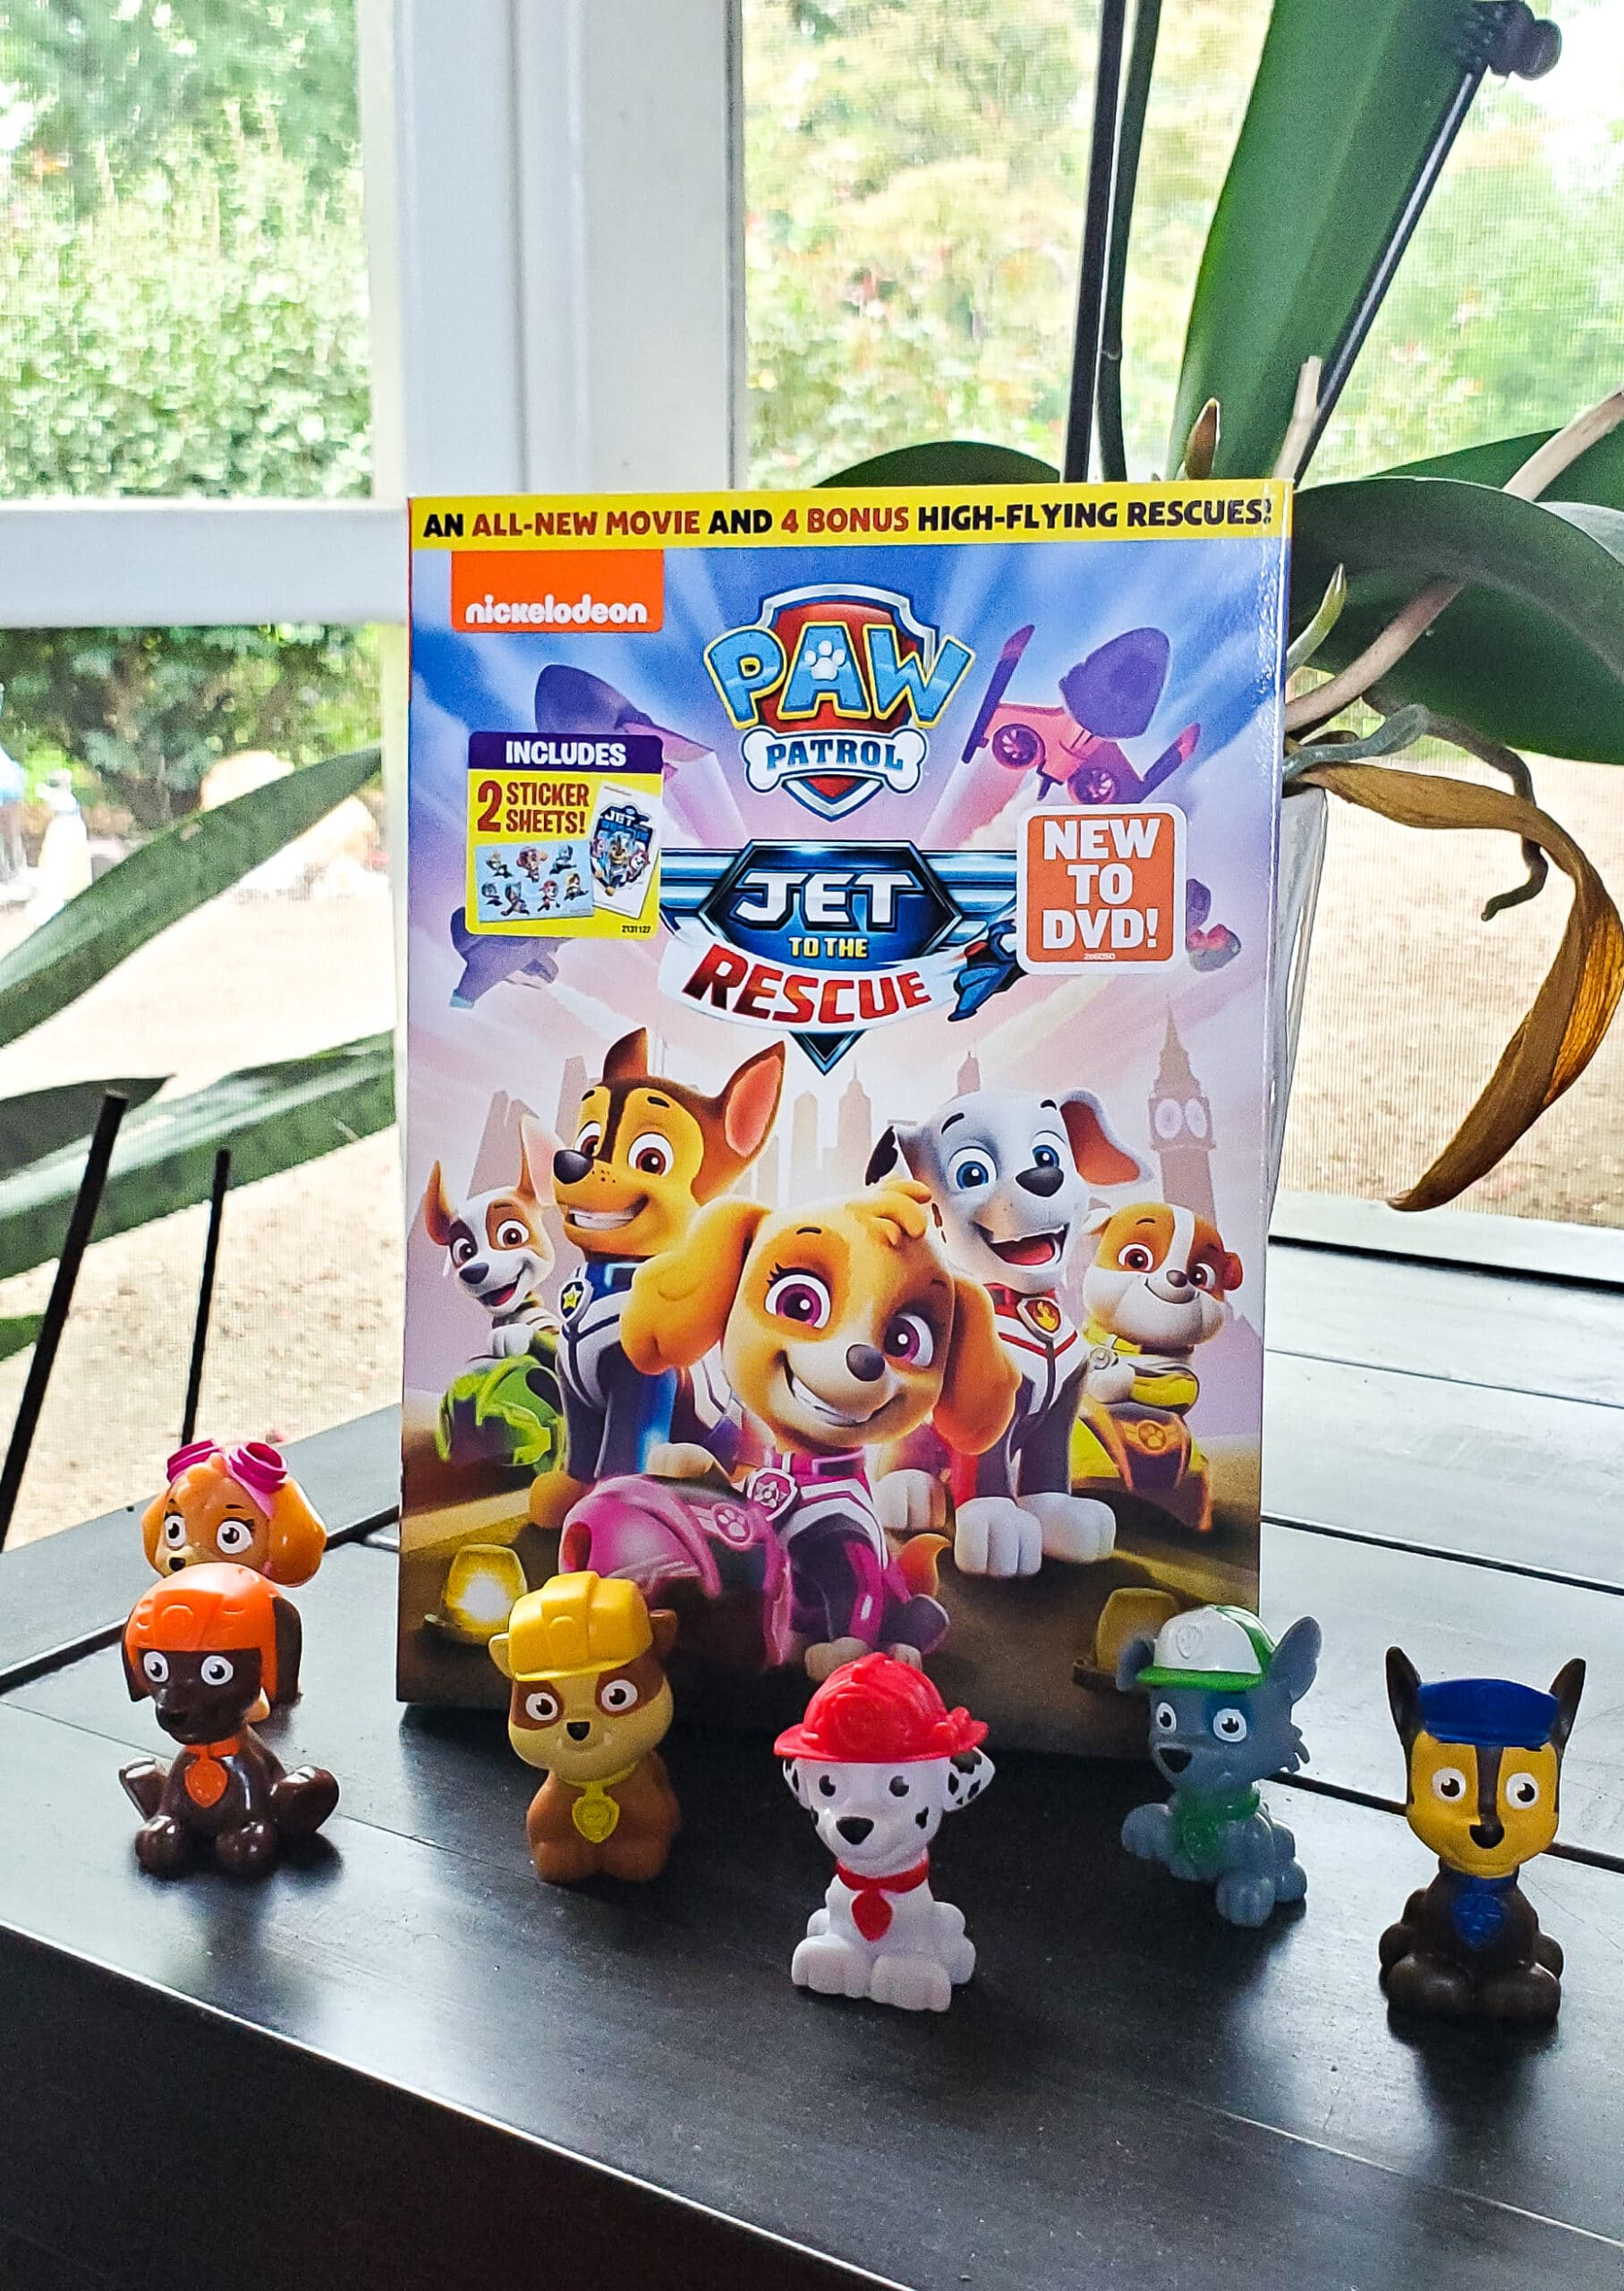 PAW Patrol Jet to the Rescue DVD Giveaway. Get ready for high-flying adventures with thePAW Patrolpups in the brand-new DVDPAW Patrol: Jet to the Rescue. Featuring an exclusive, all-new original TV movie and four fan-favorite episodes from the number-one ranked preschool show on television. Enter to win your very own PAW Patrol: Jet to the Rescue DVD in my special giveaway on my blog.